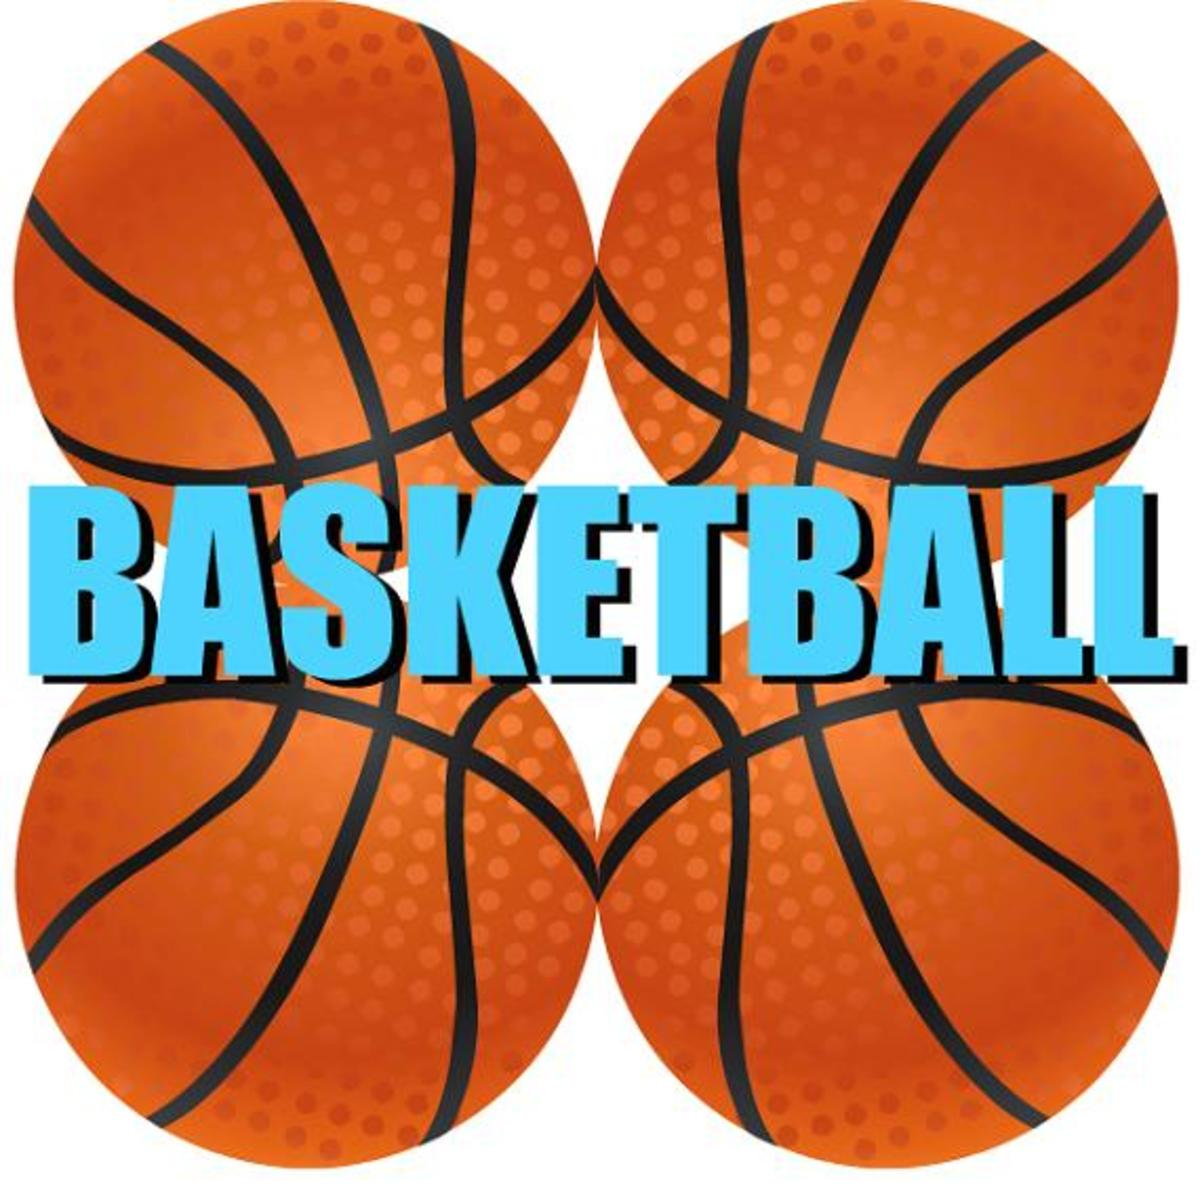 Four basketballs clip art